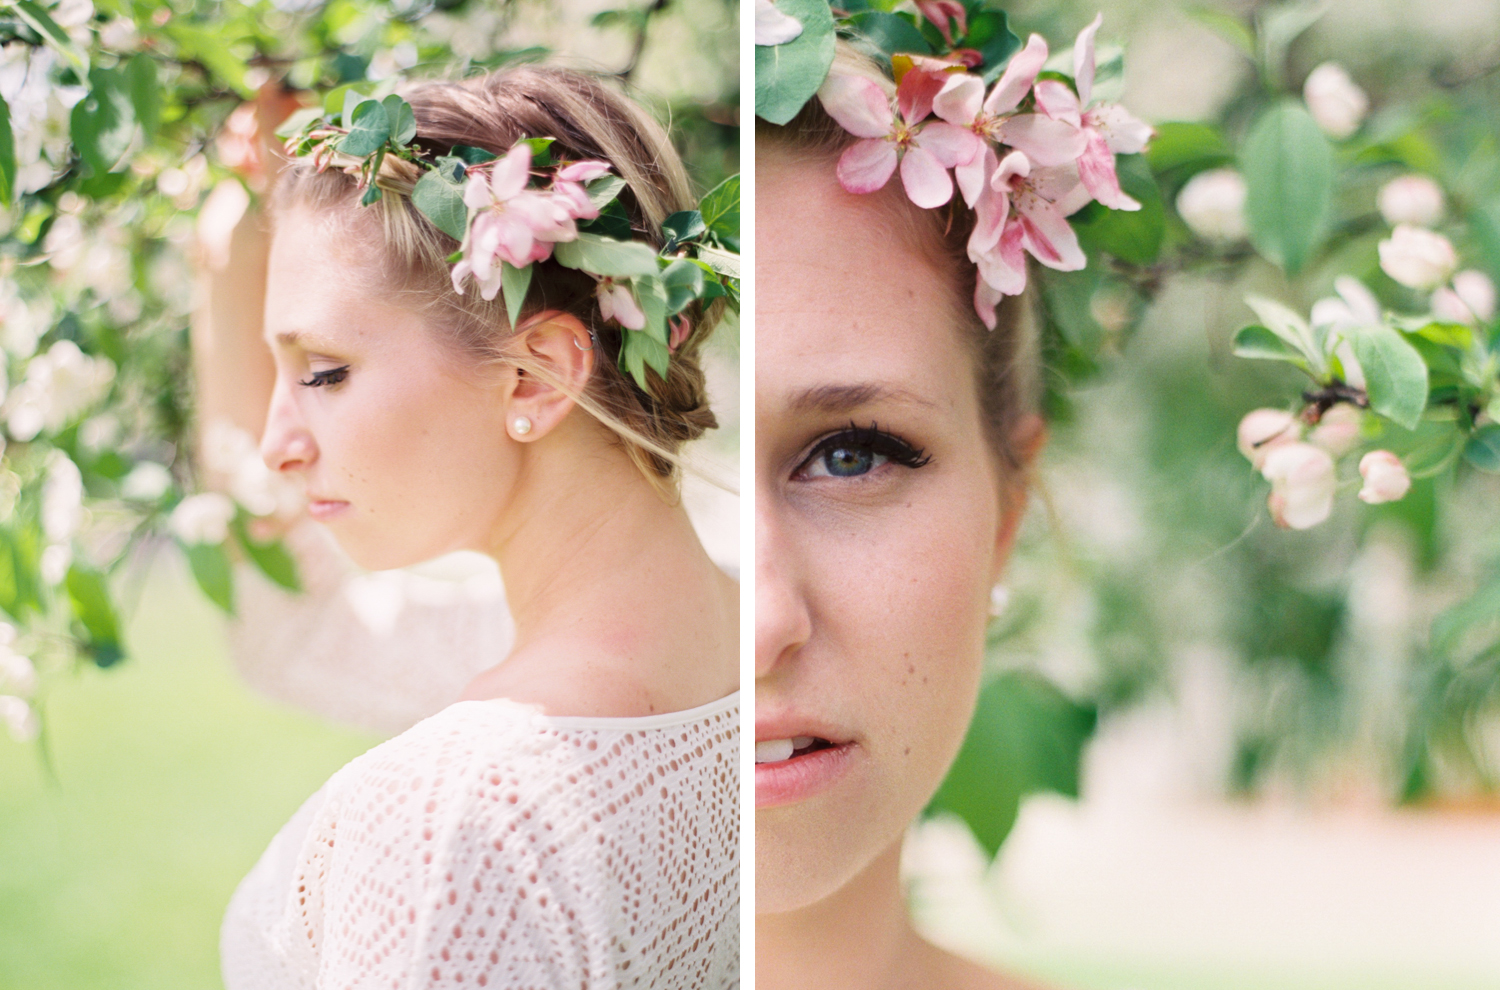 kateweinsteinphoto_molly_cherryblossoms7.jpg